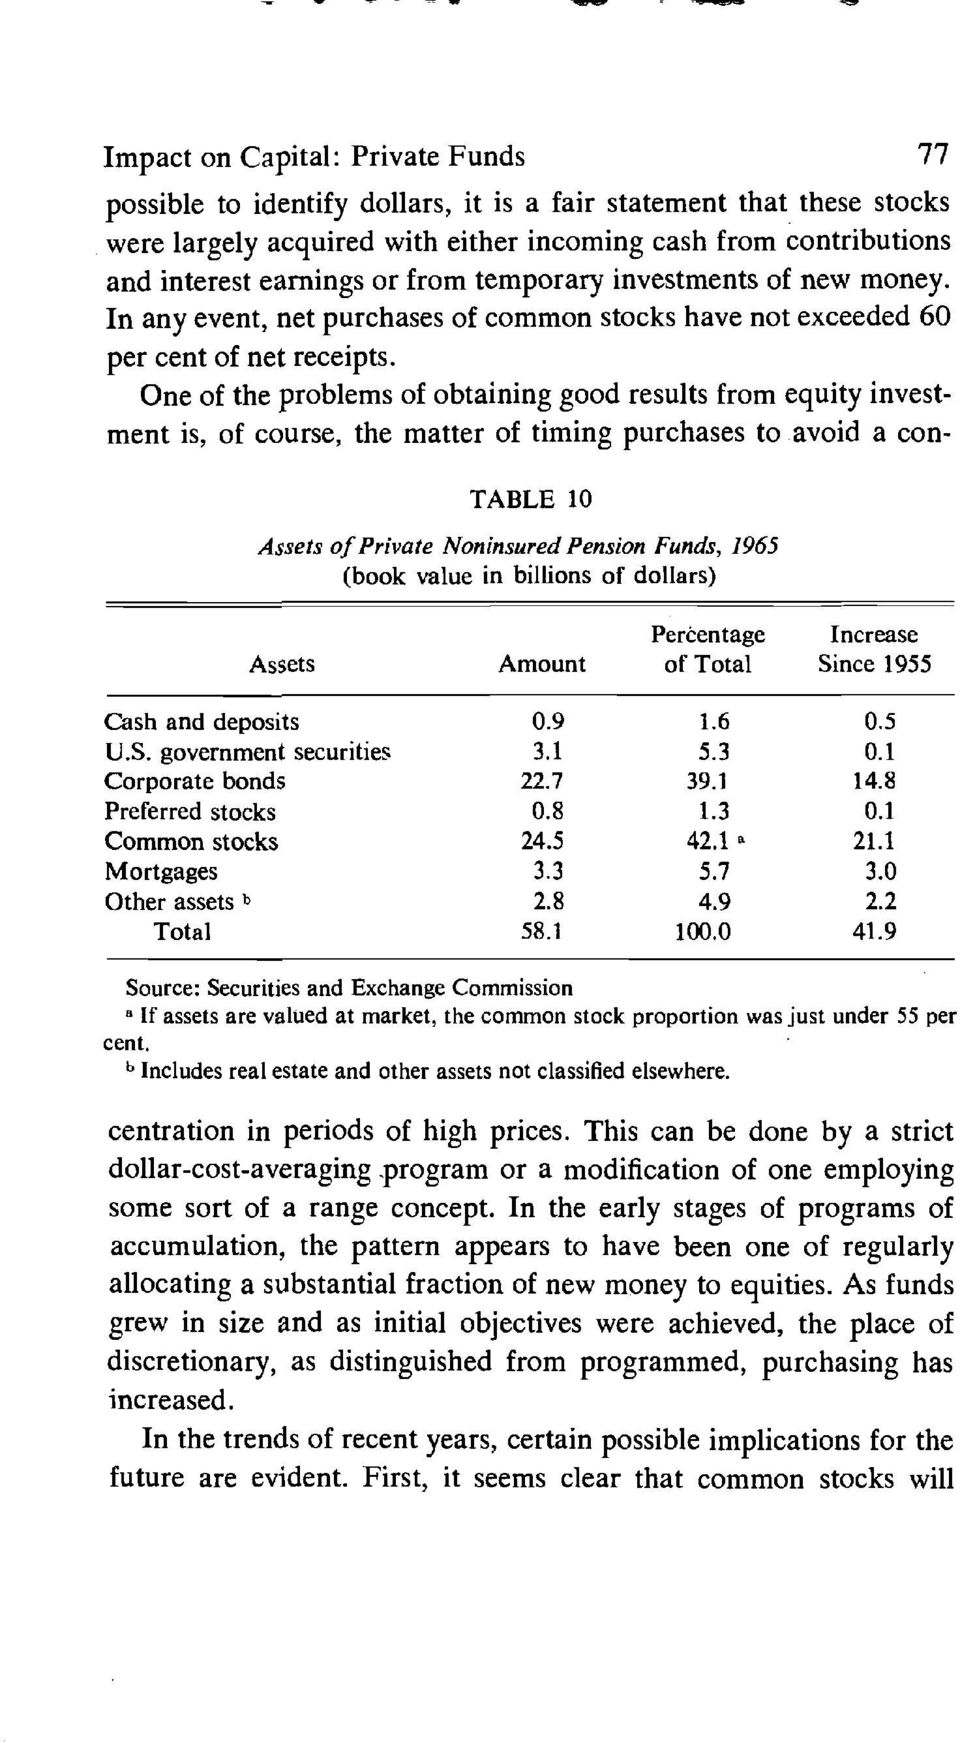 One of the problems of obtaining good results from equity investment is, of course, the matter of timing purchases to avoid a con- TABLE 10 Assets of Private Non insured Pension Funds, 1965 (book